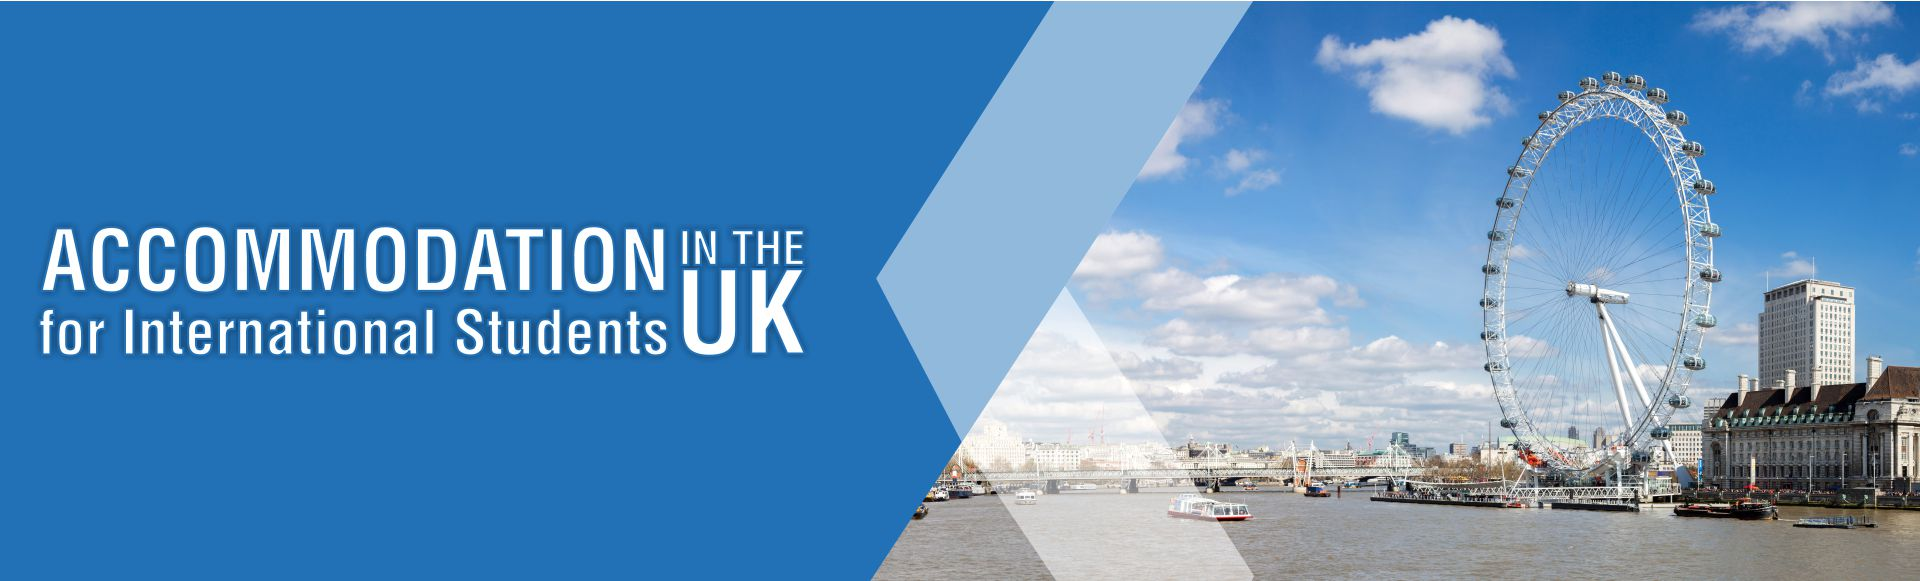 Accommodation in the UK for International Students